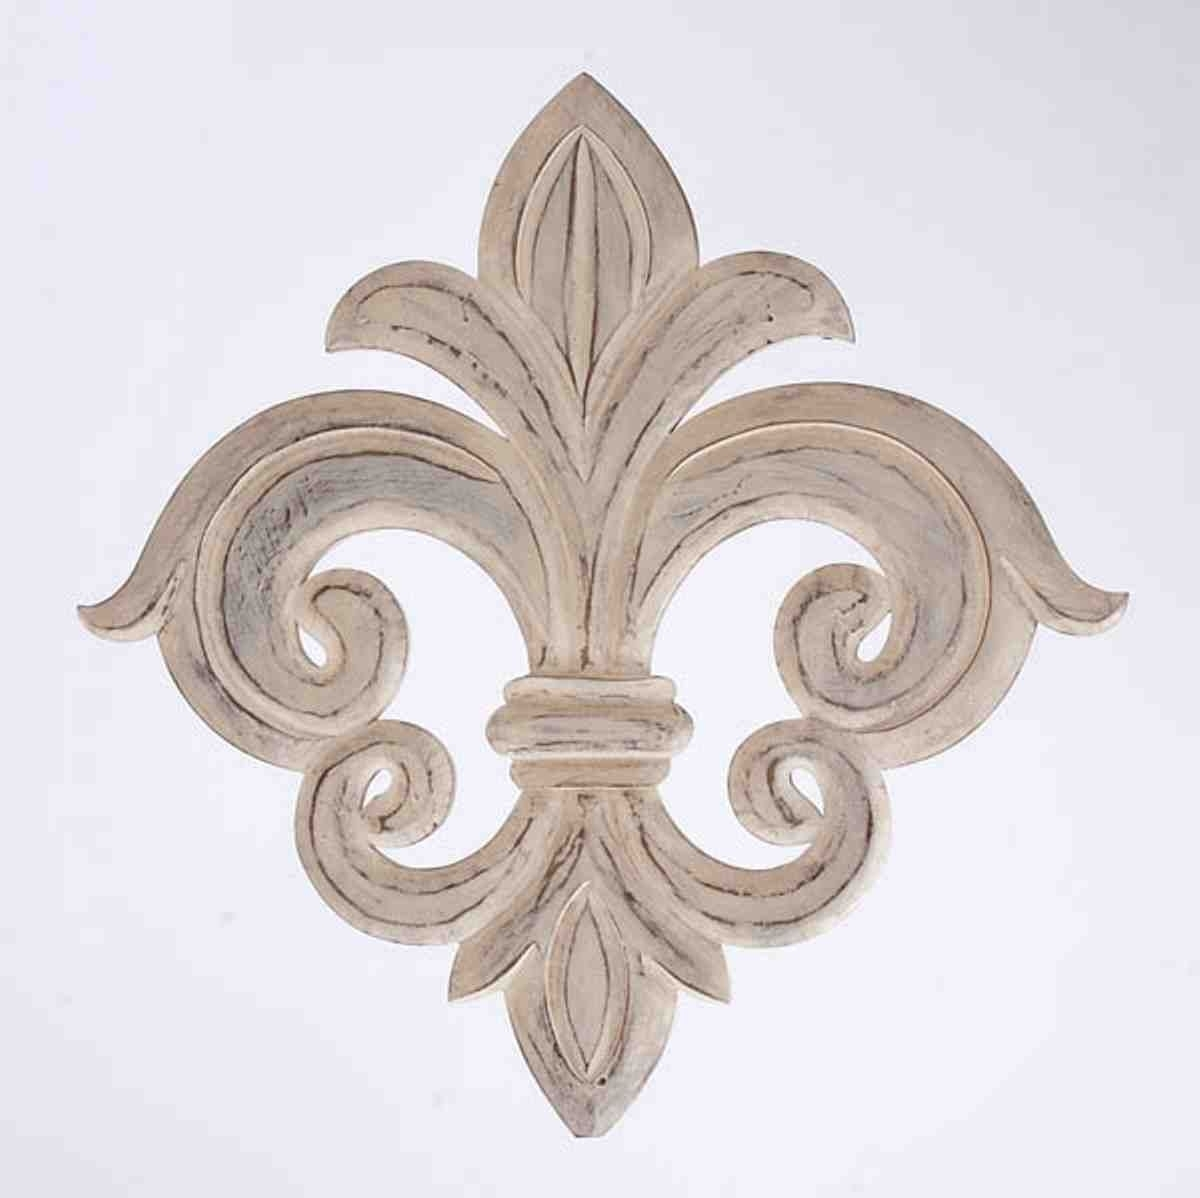 Wrought Iron Fleur De Lis Wall Decor | Wrought Iron Wall Decor Regarding Most Current Fleur De Lis Wall Art (Gallery 2 of 20)